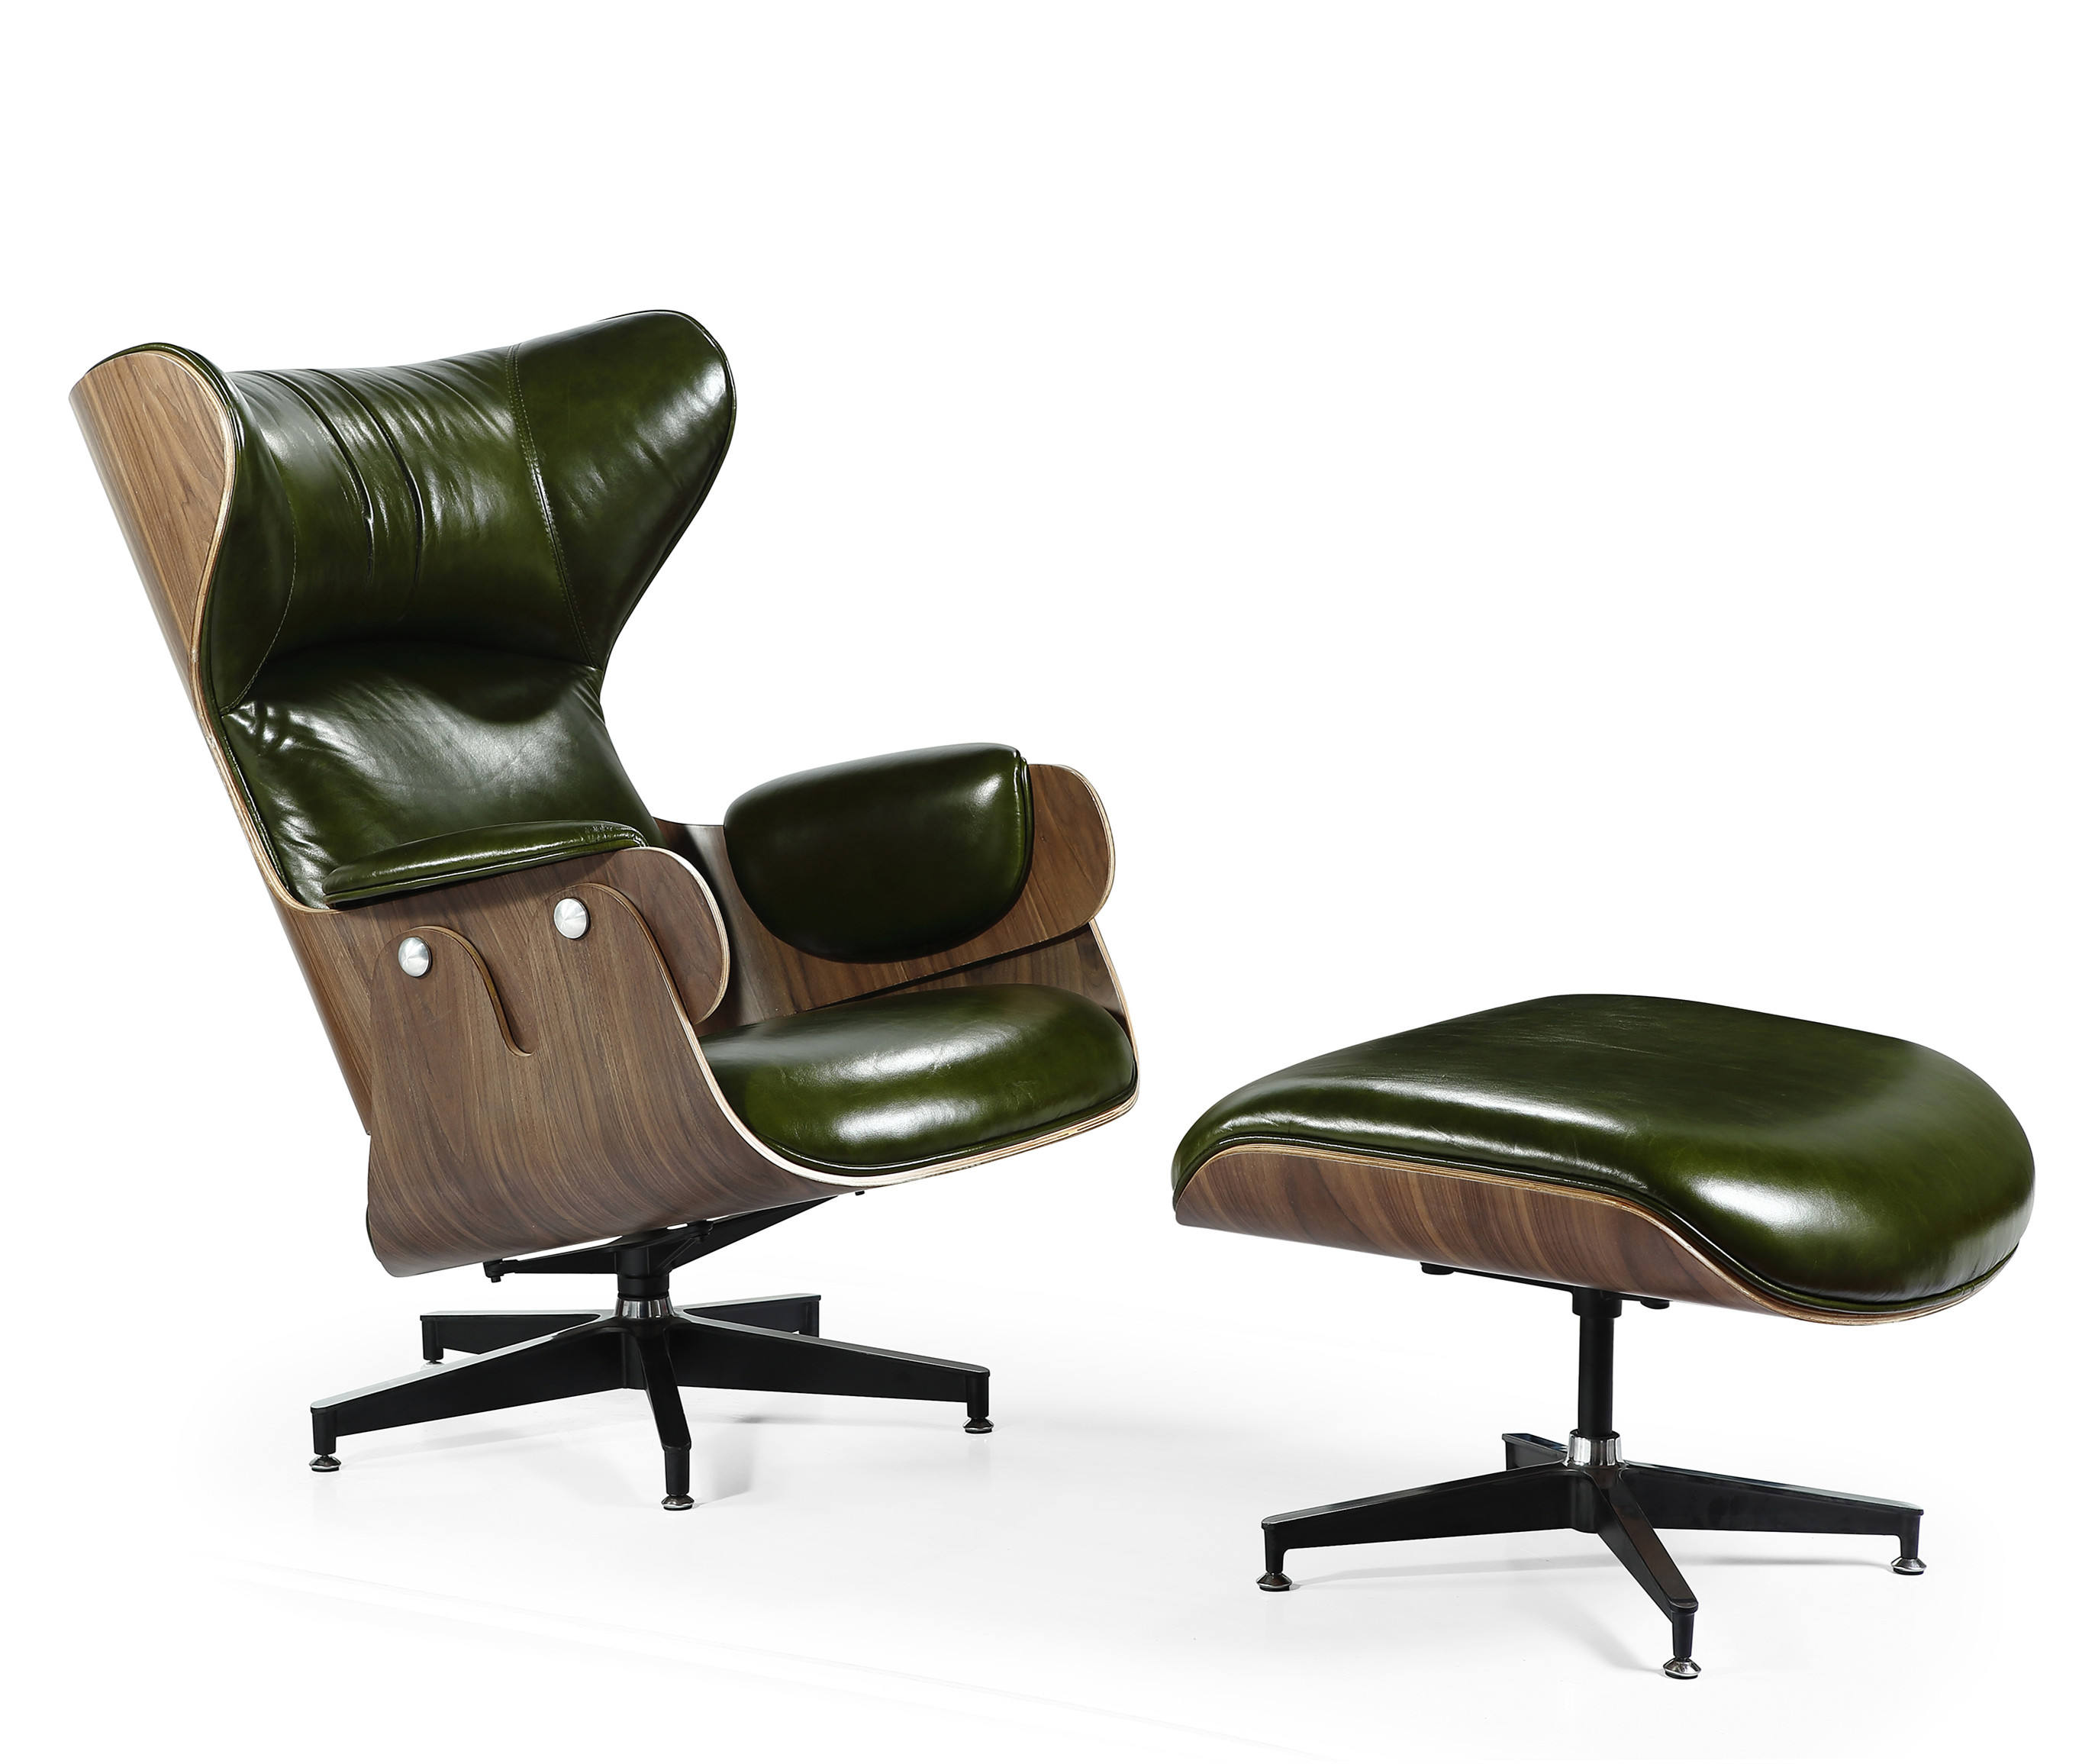 Modern Design Living room Lounger Armchair in Leather or Fabric